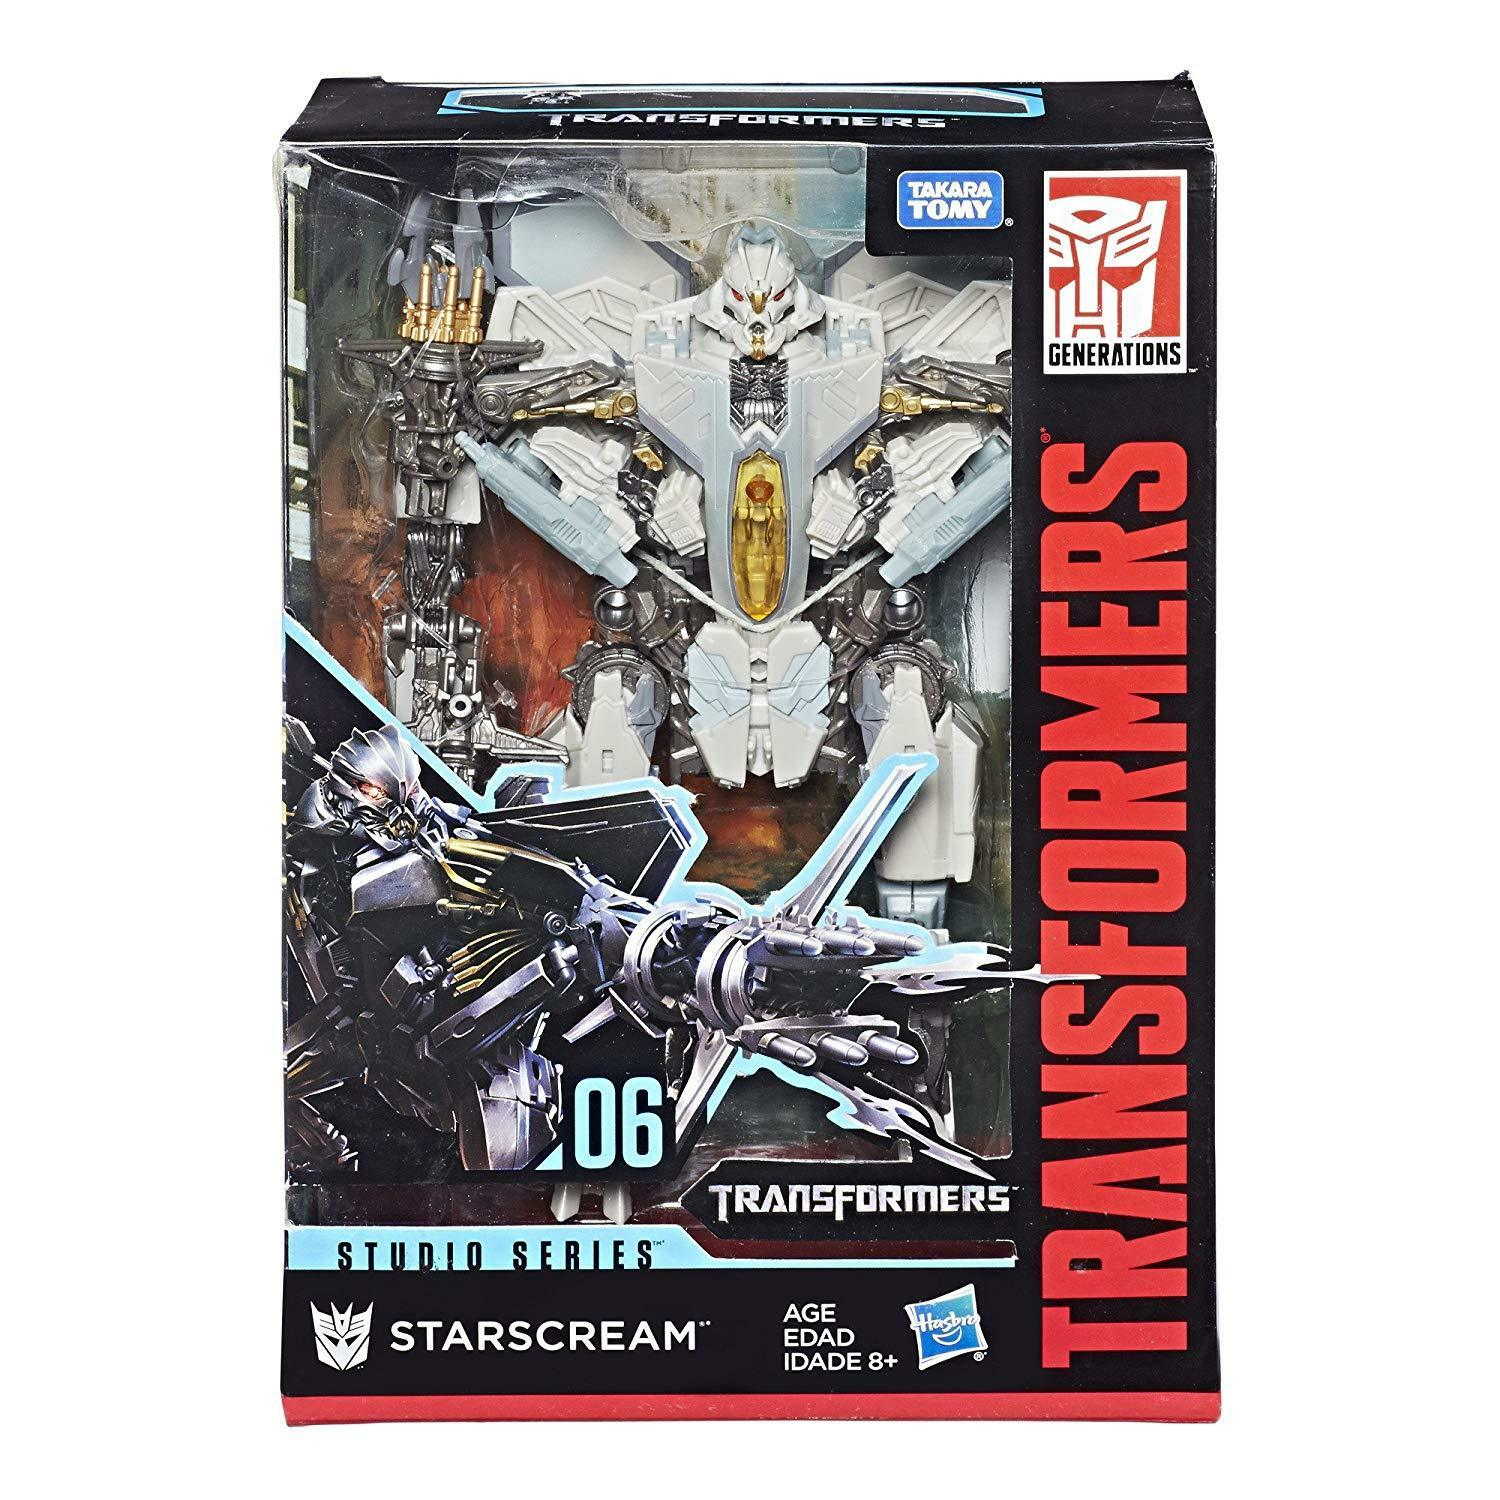 Transformers 100% Hasbro Studio Series Voyager Class 06 Starscream NEW